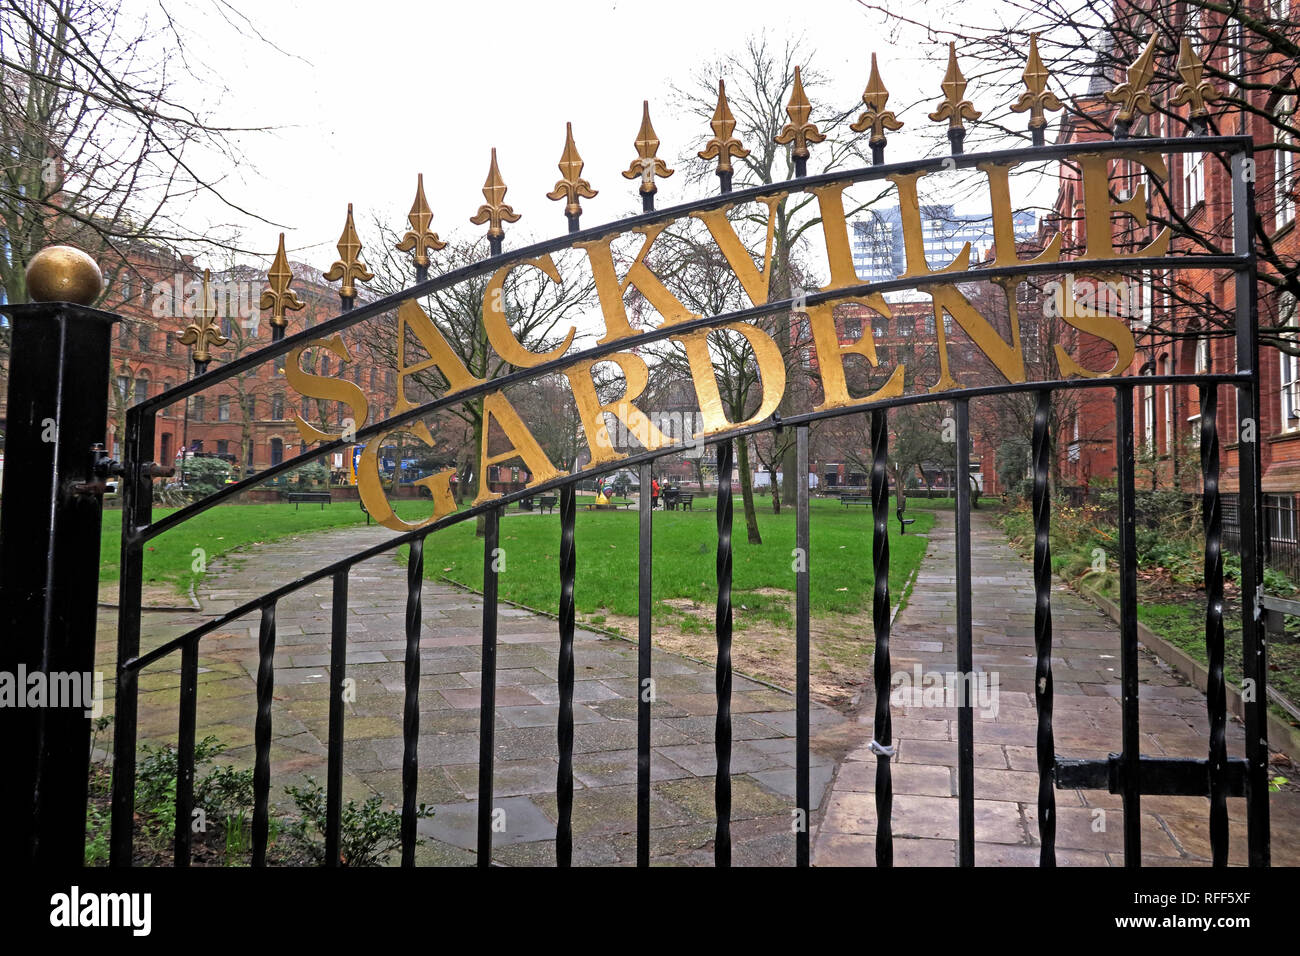 Sackville Gardens gates, canal Street, Manchester M1 3HB - Stock Image